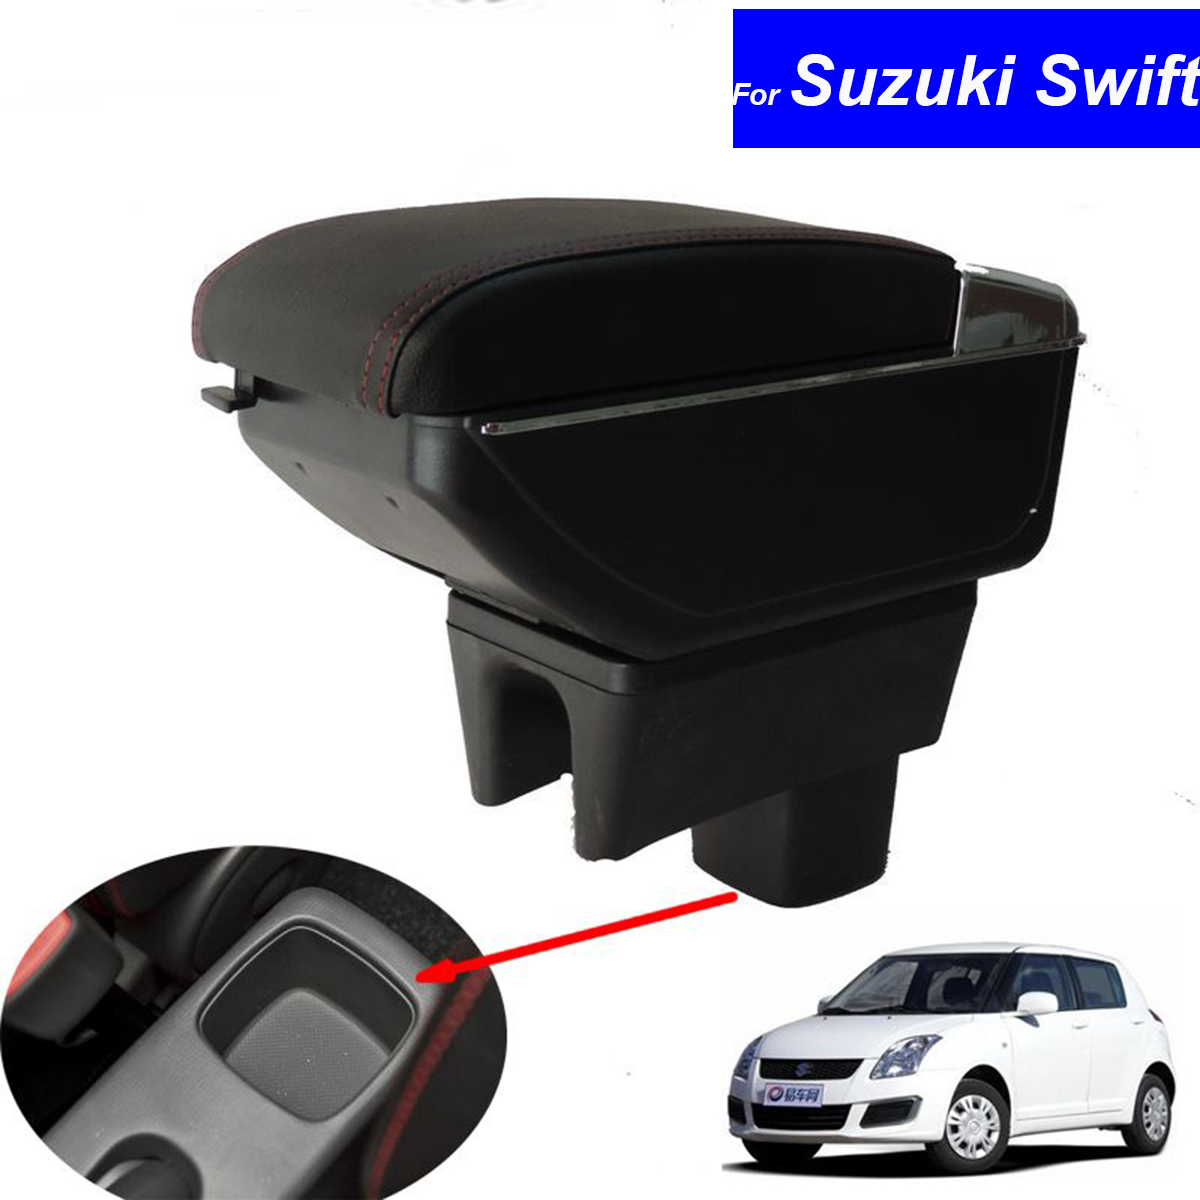 Leather Car Center Console Armrest Box for Suzuki Swift 2008 2009 2010 2011 2012 2013 2014 2015 2016 Auto Armrests with USB